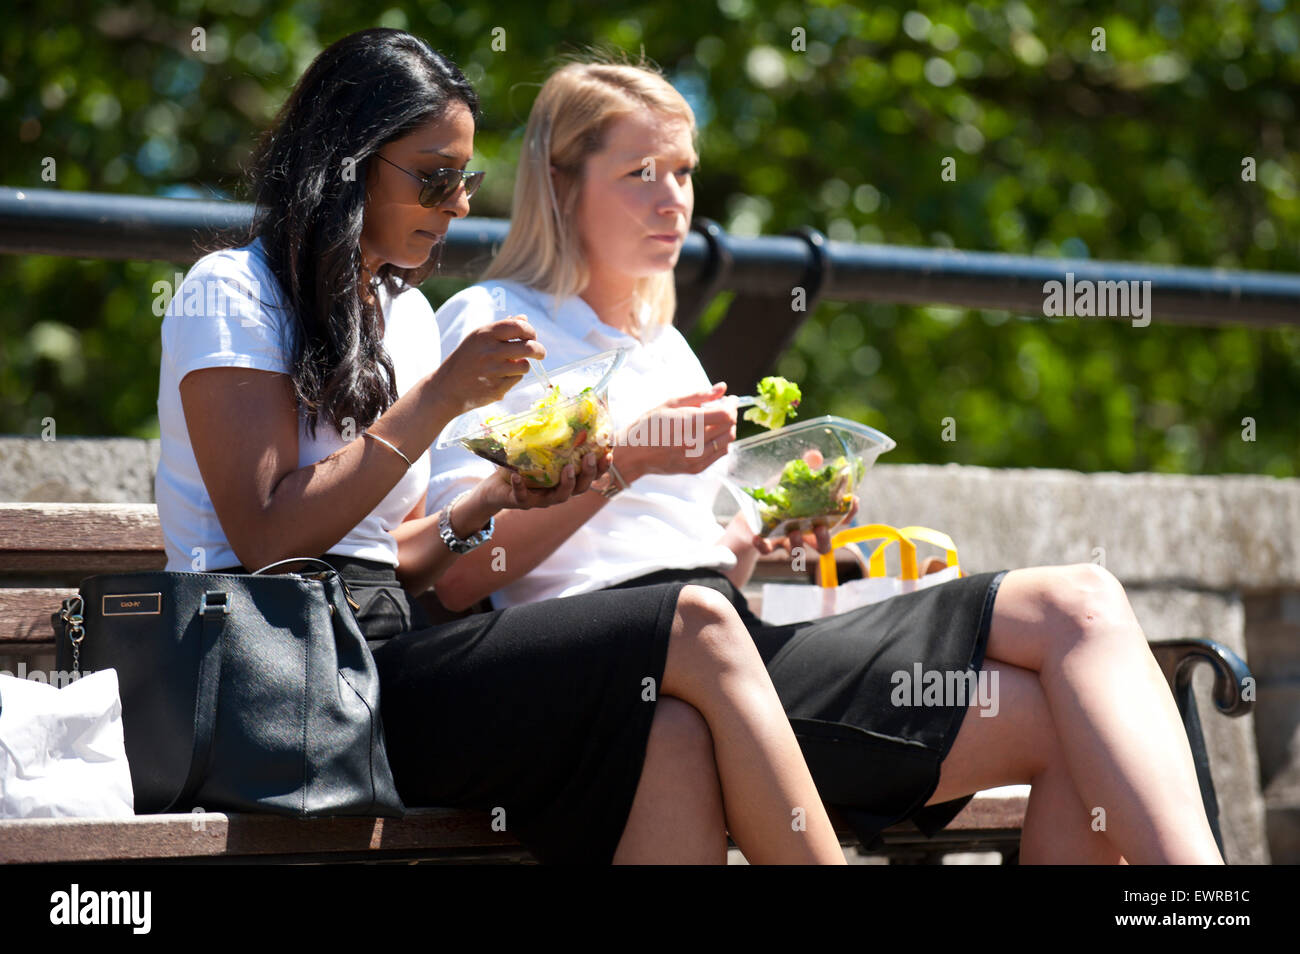 London, UK. 30th June 2015. Two young women eat salad near The Embankment. Credit:  Graham M. Lawrence/Alamy Live - Stock Image